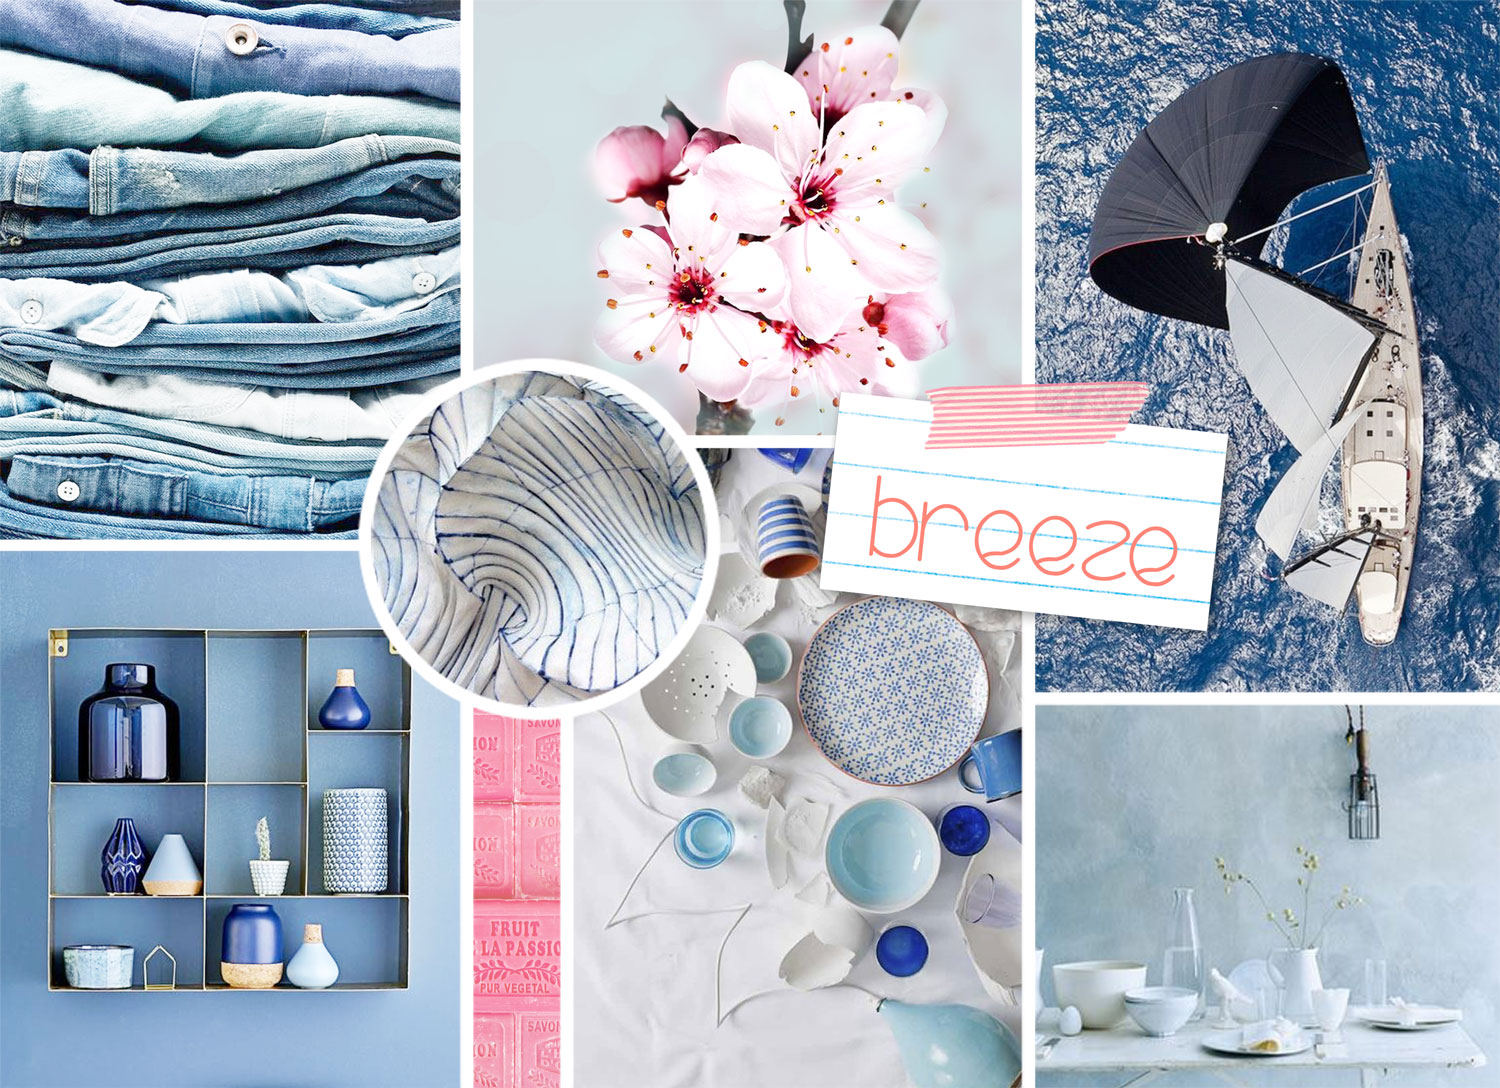 Zen Chic's new fabric line BREEZE brings with it four captivating, dynamic patterns that put the spotlight on this beautiful new collection.